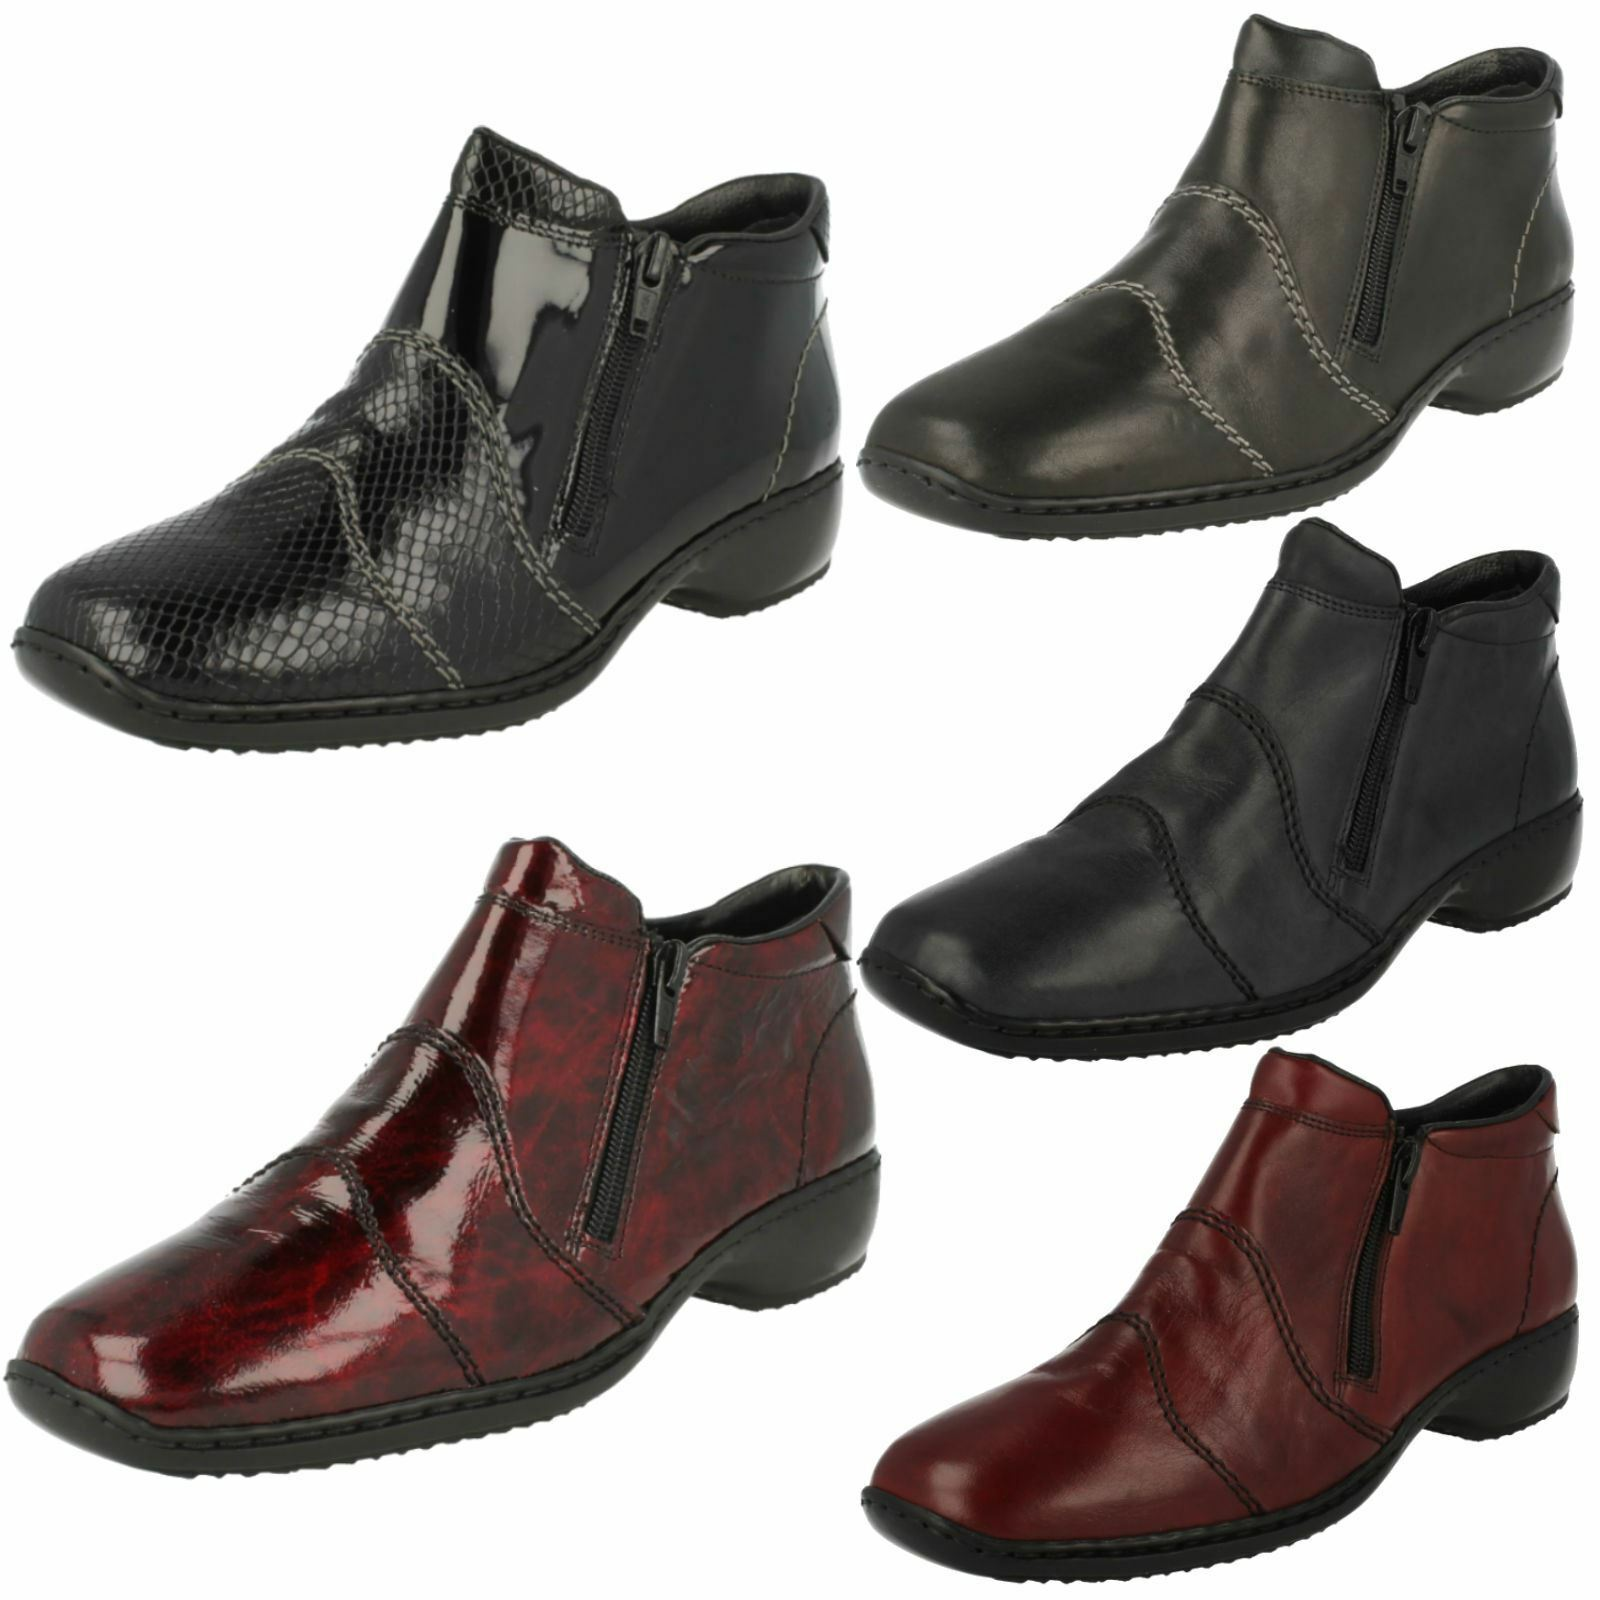 Man/Woman Ladies Rieker Boots, L3892 Elegant appearance Sales Italy Very good color